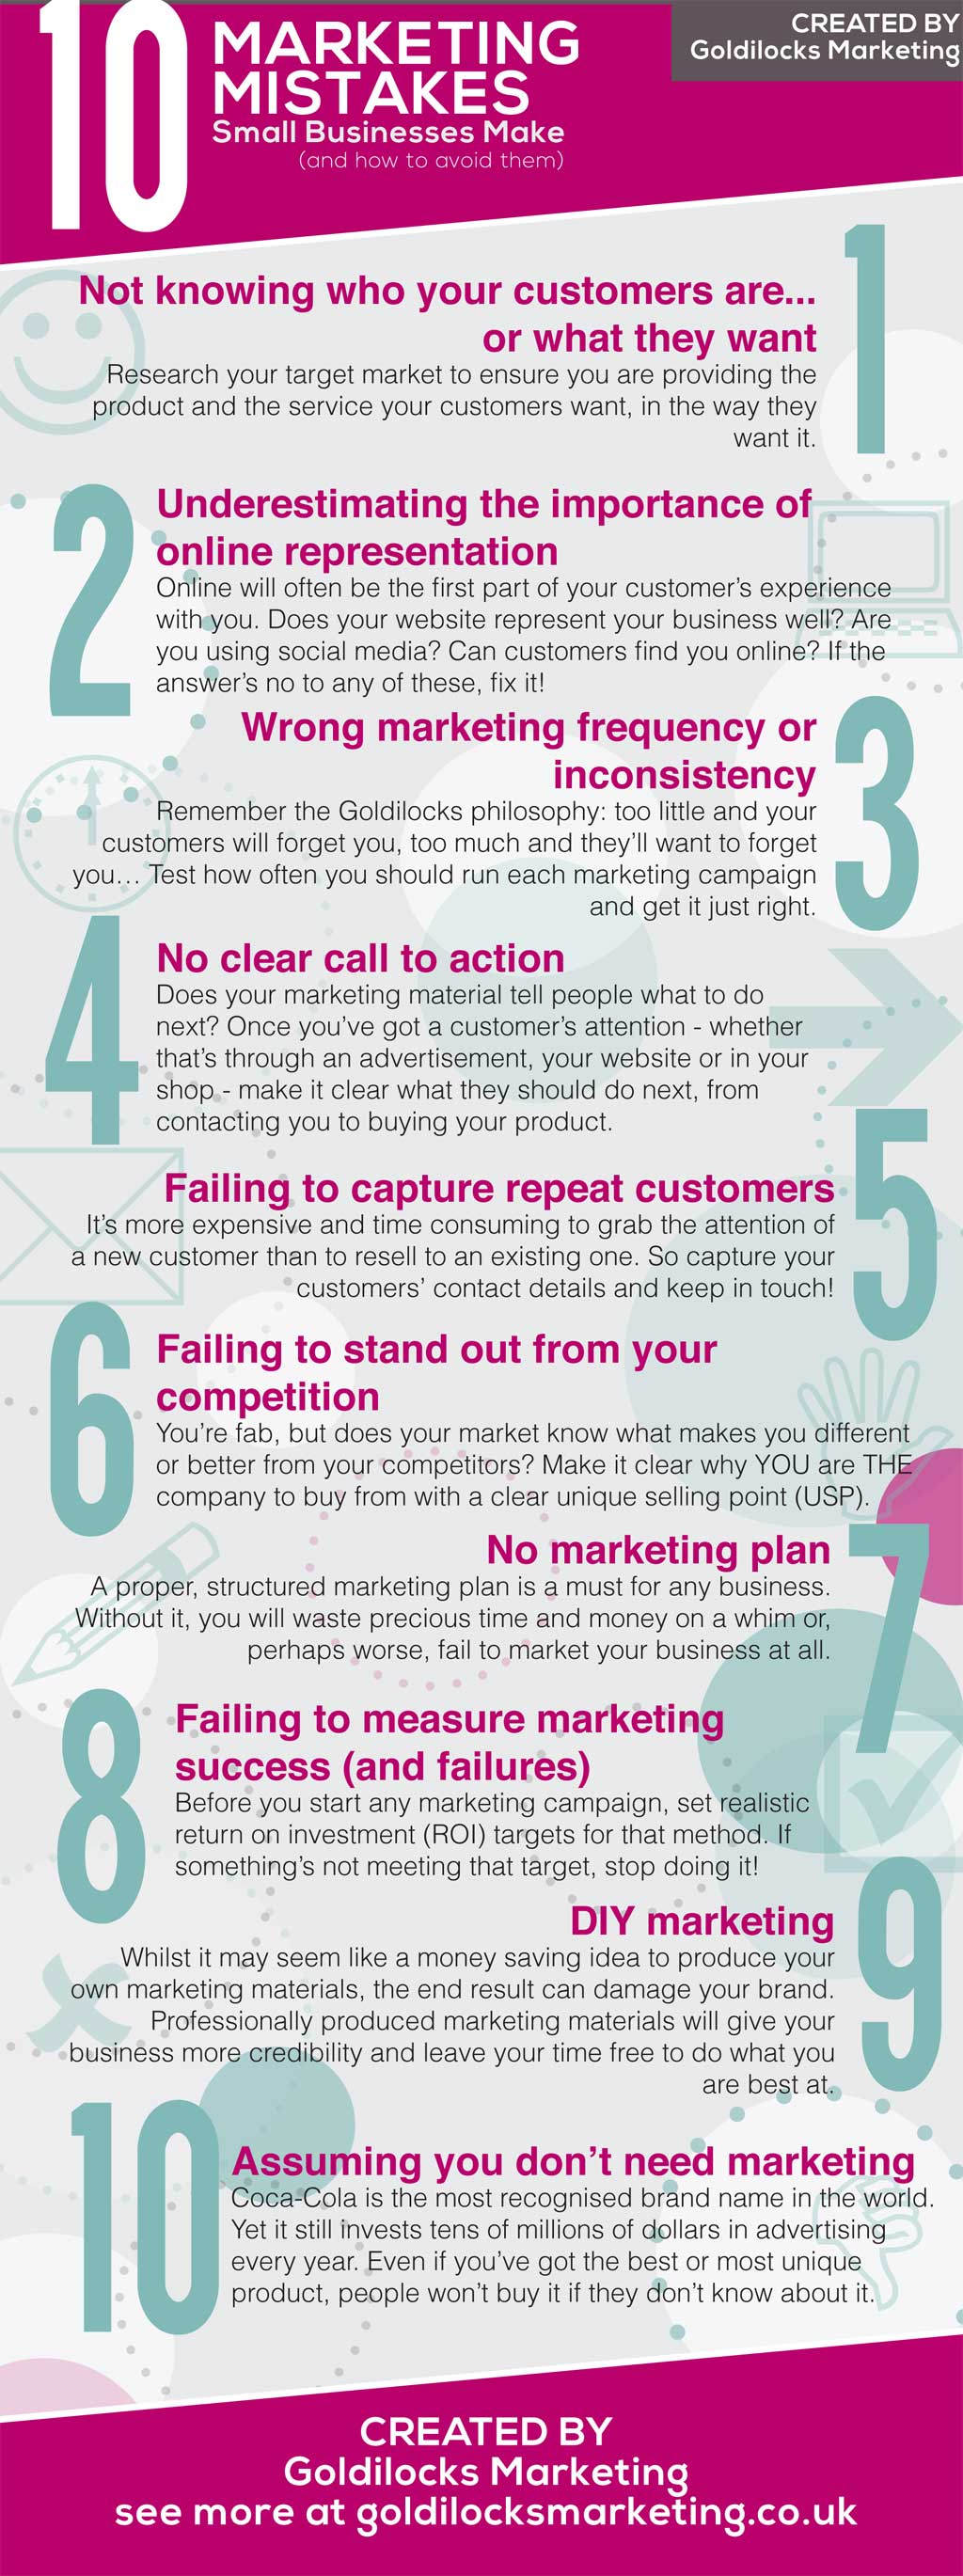 ten marketing mistakes small businesses make (info graphic)